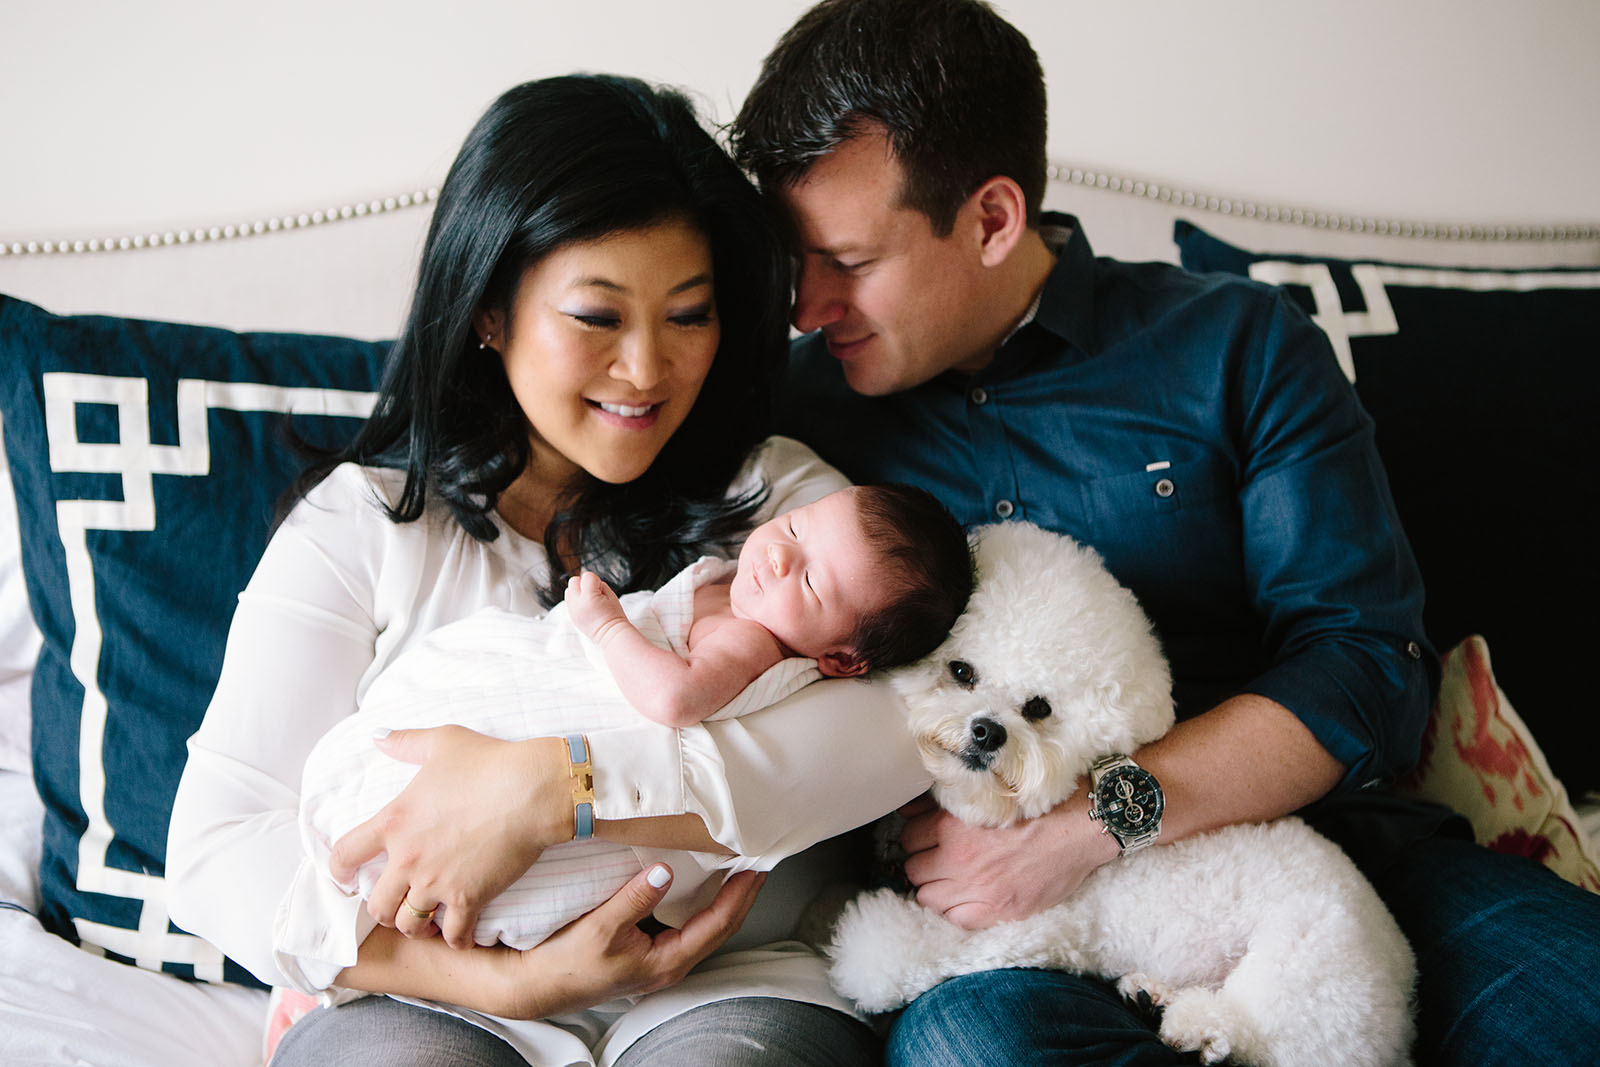 Newborn photography safety tips for photographers